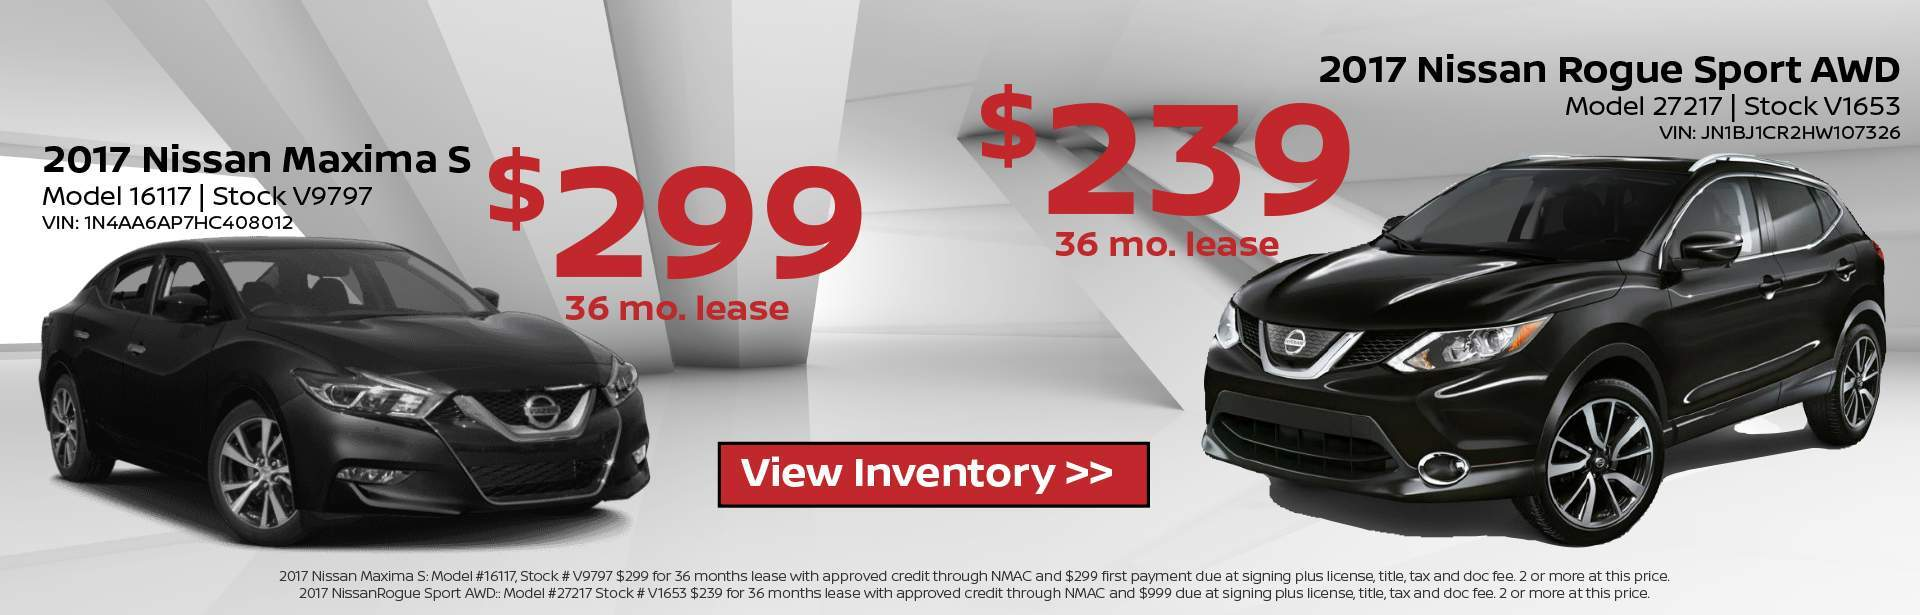 Nissan Rogue Sport and Altima Lease